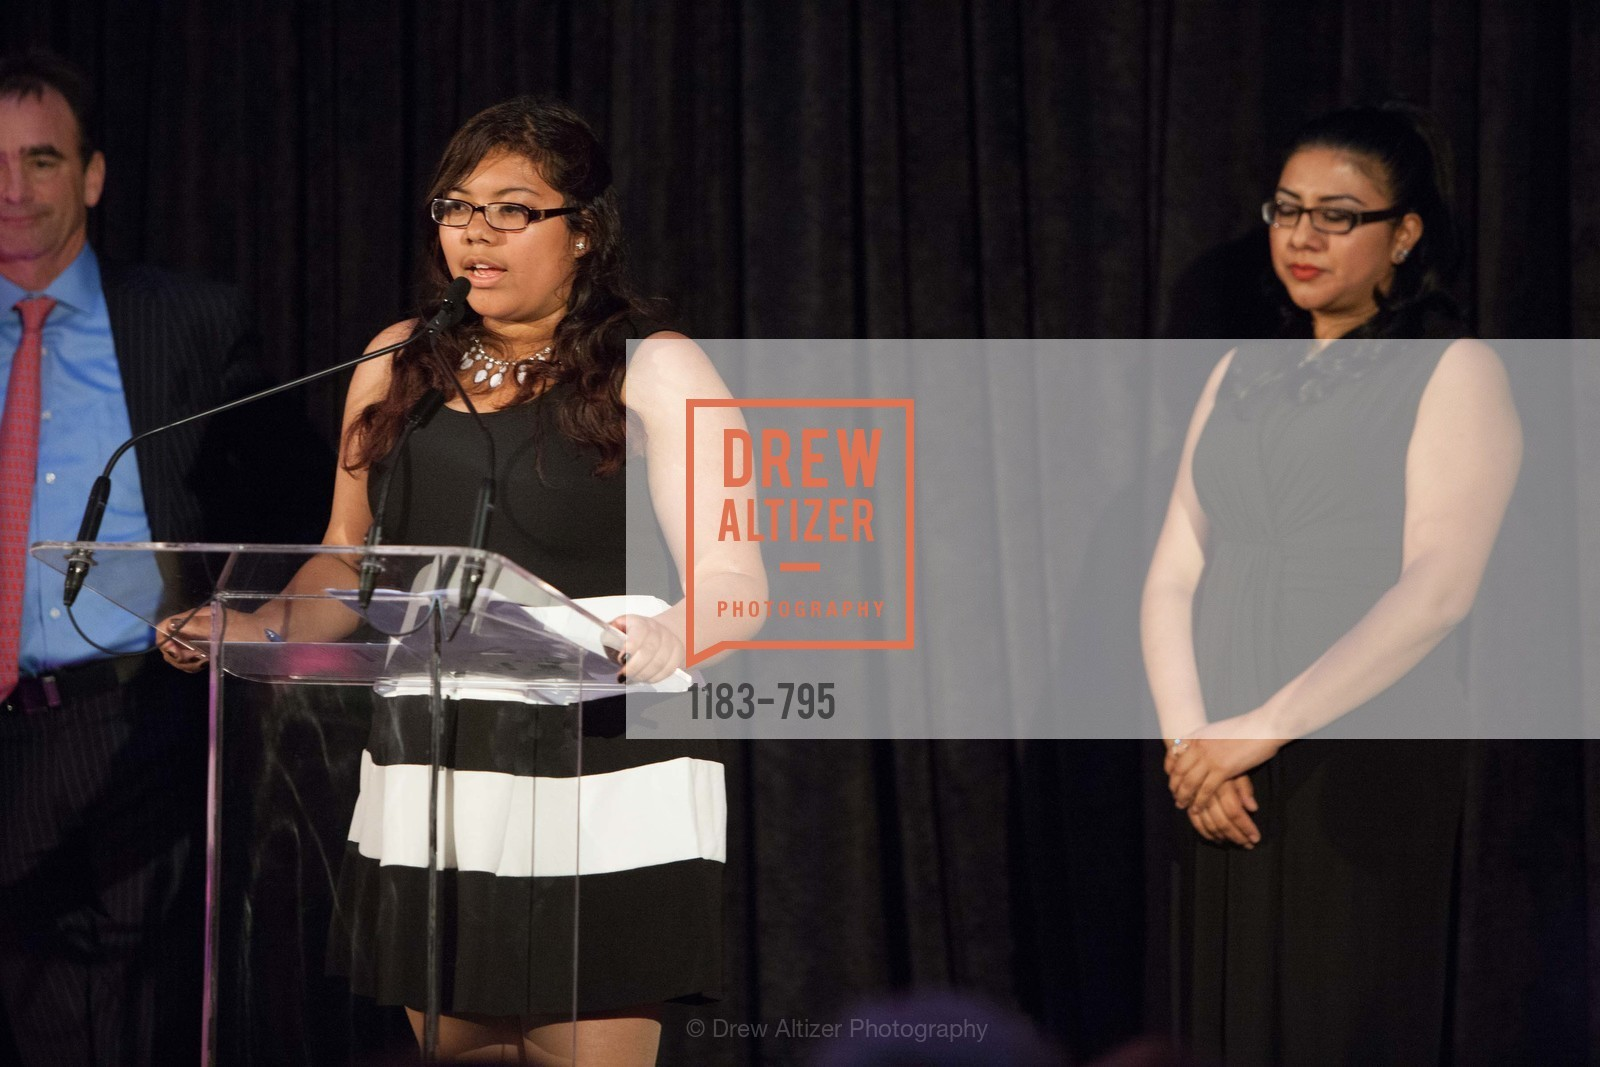 Alicia Rodriguez, Berta Morales, COMPASS FAMILY SERVICES Annual Spring Benefit:  Every Family Needs A Home, US, April 22nd, 2015,Drew Altizer, Drew Altizer Photography, full-service agency, private events, San Francisco photographer, photographer california